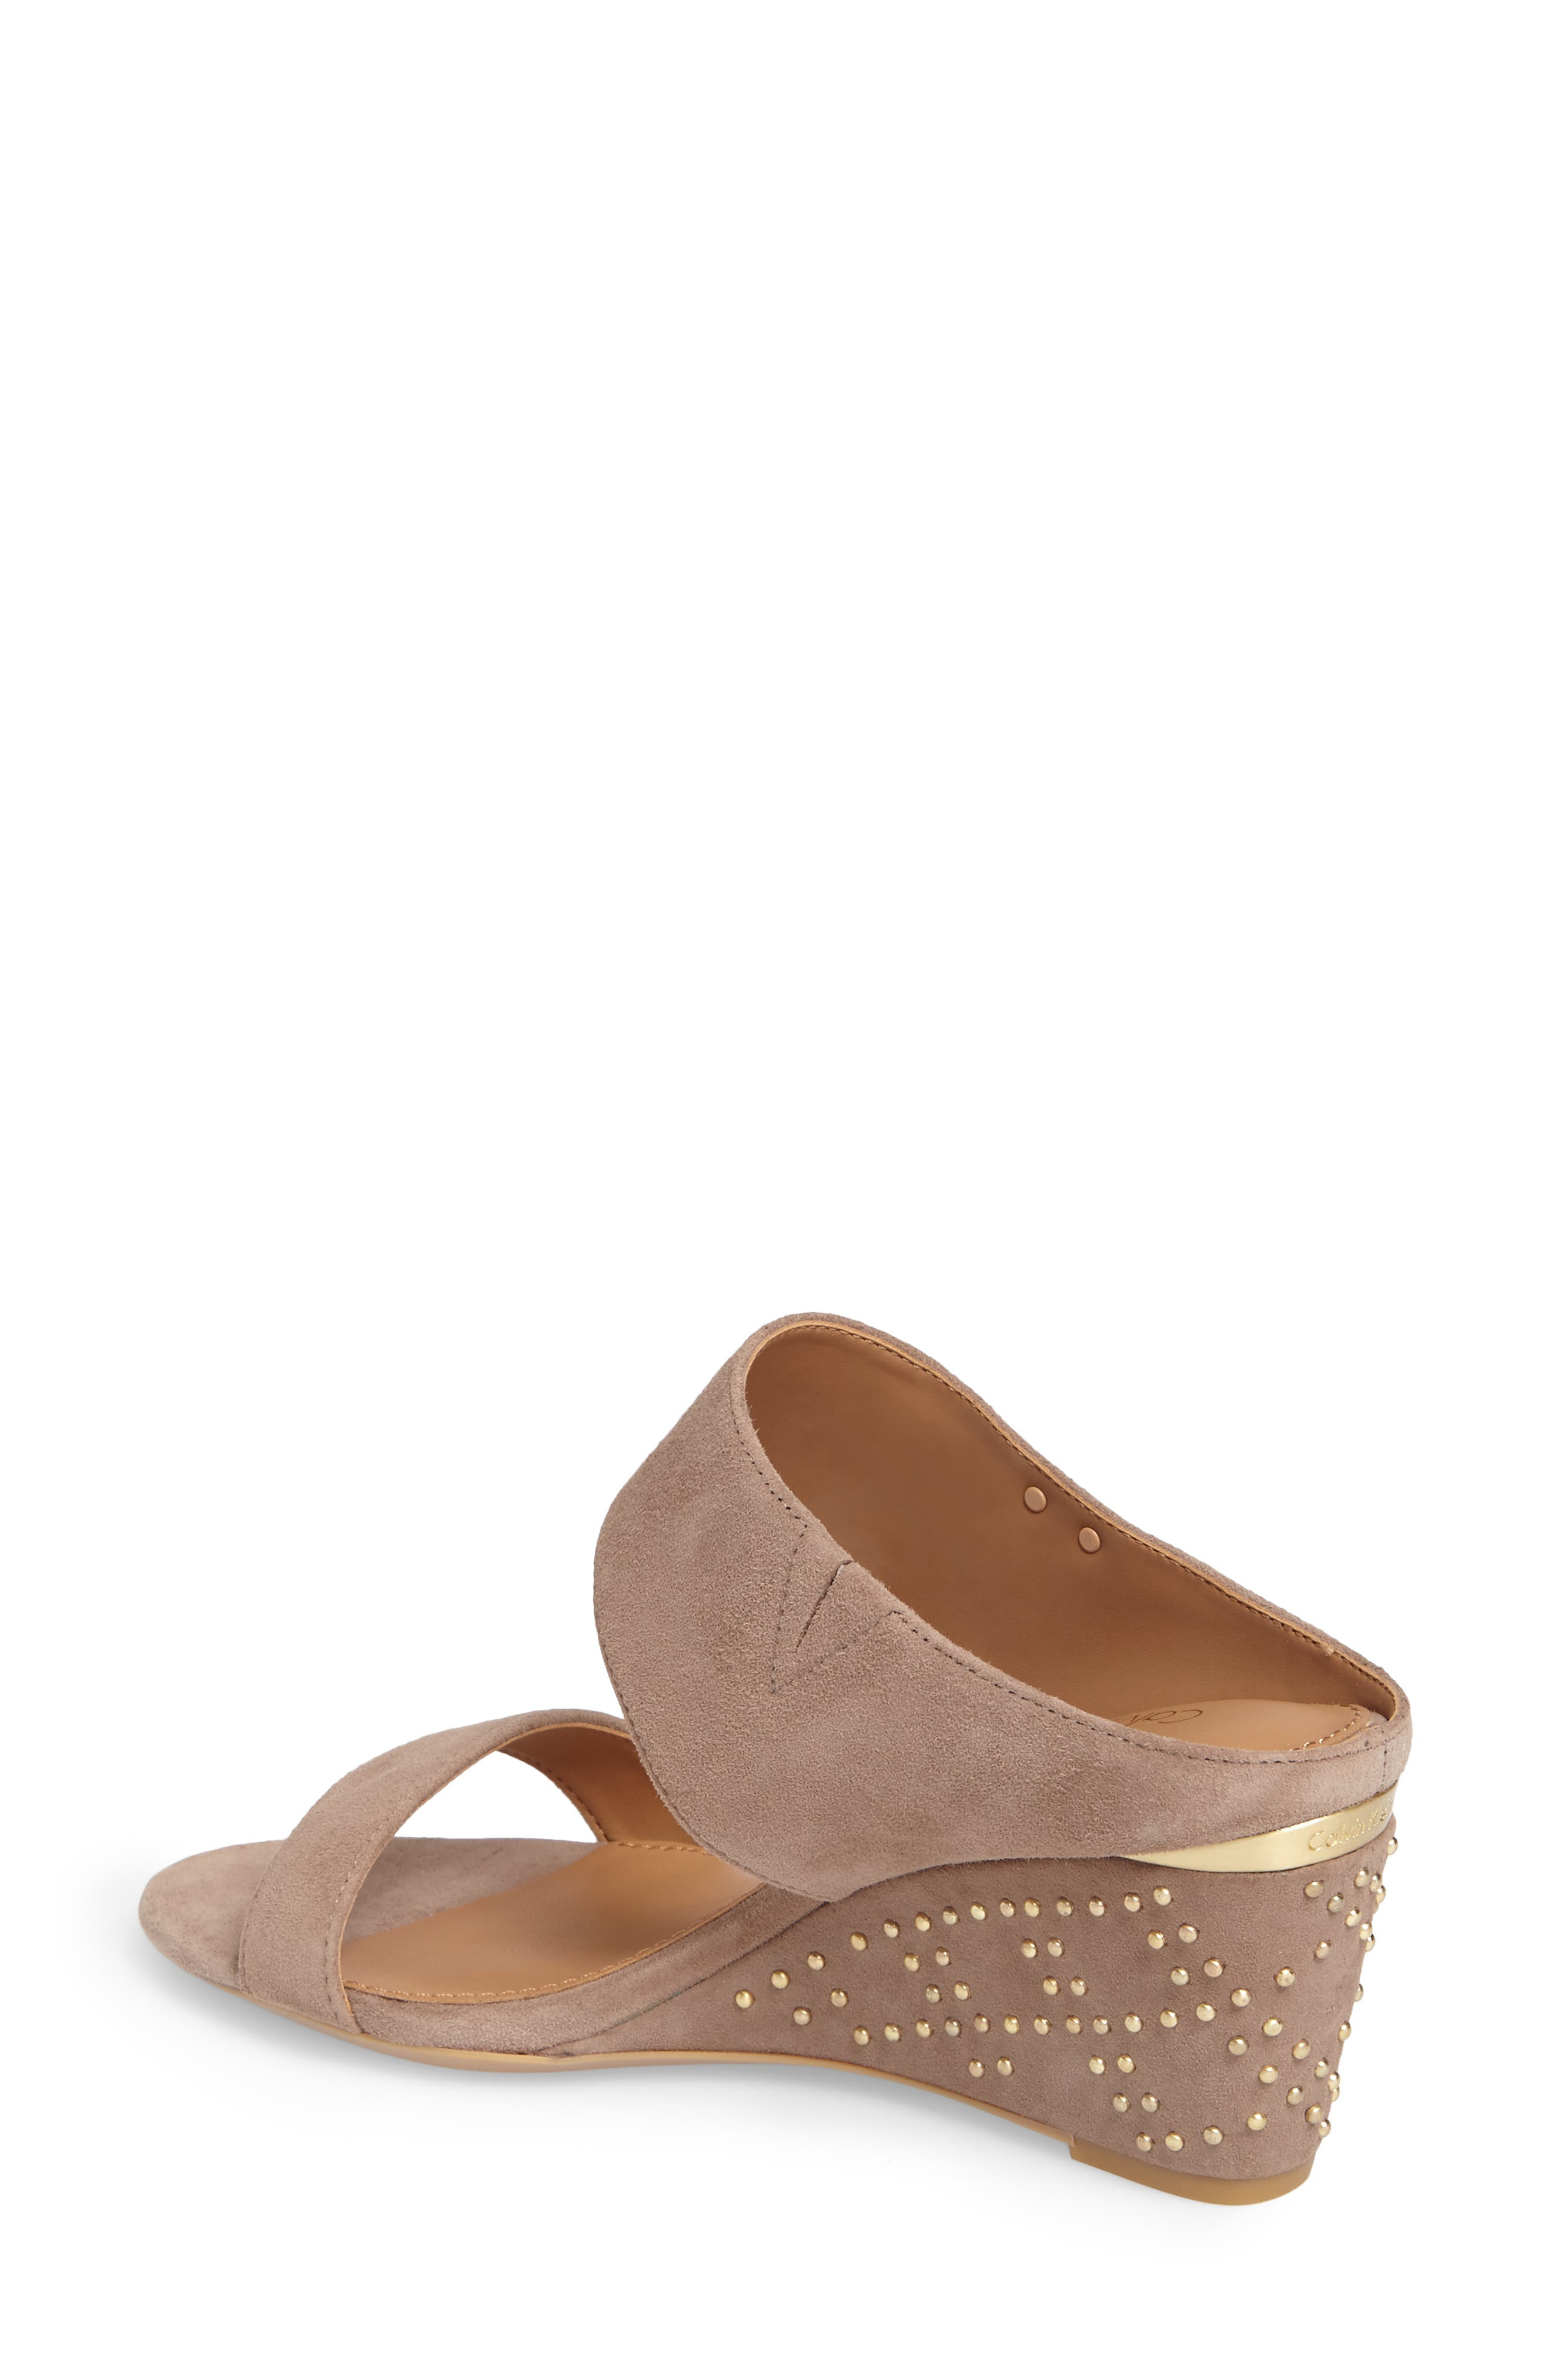 Phyllis Studded Wedge Sandal,                             Alternate thumbnail 2, color,                             Winter Taupe Suede